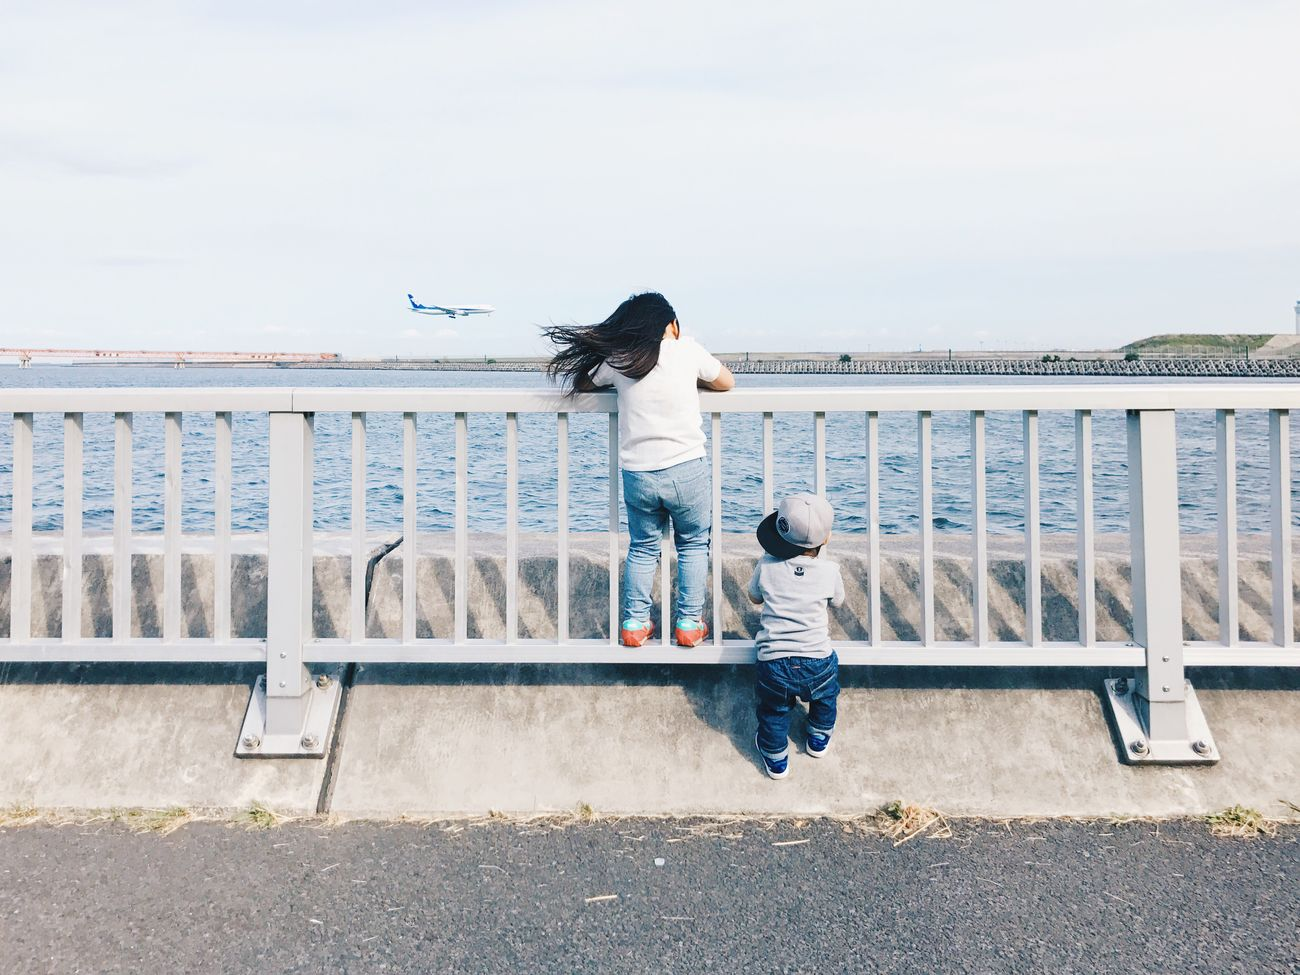 Hello My Baby Vscogood Vscocam VSCO Real People Leisure Activity Water Railing Outdoors Day Full Length Togetherness Sea Two People Lifestyles Rear View Motion Casual Clothing Women Standing Men Horizon Over Water Nature Sky Airplane